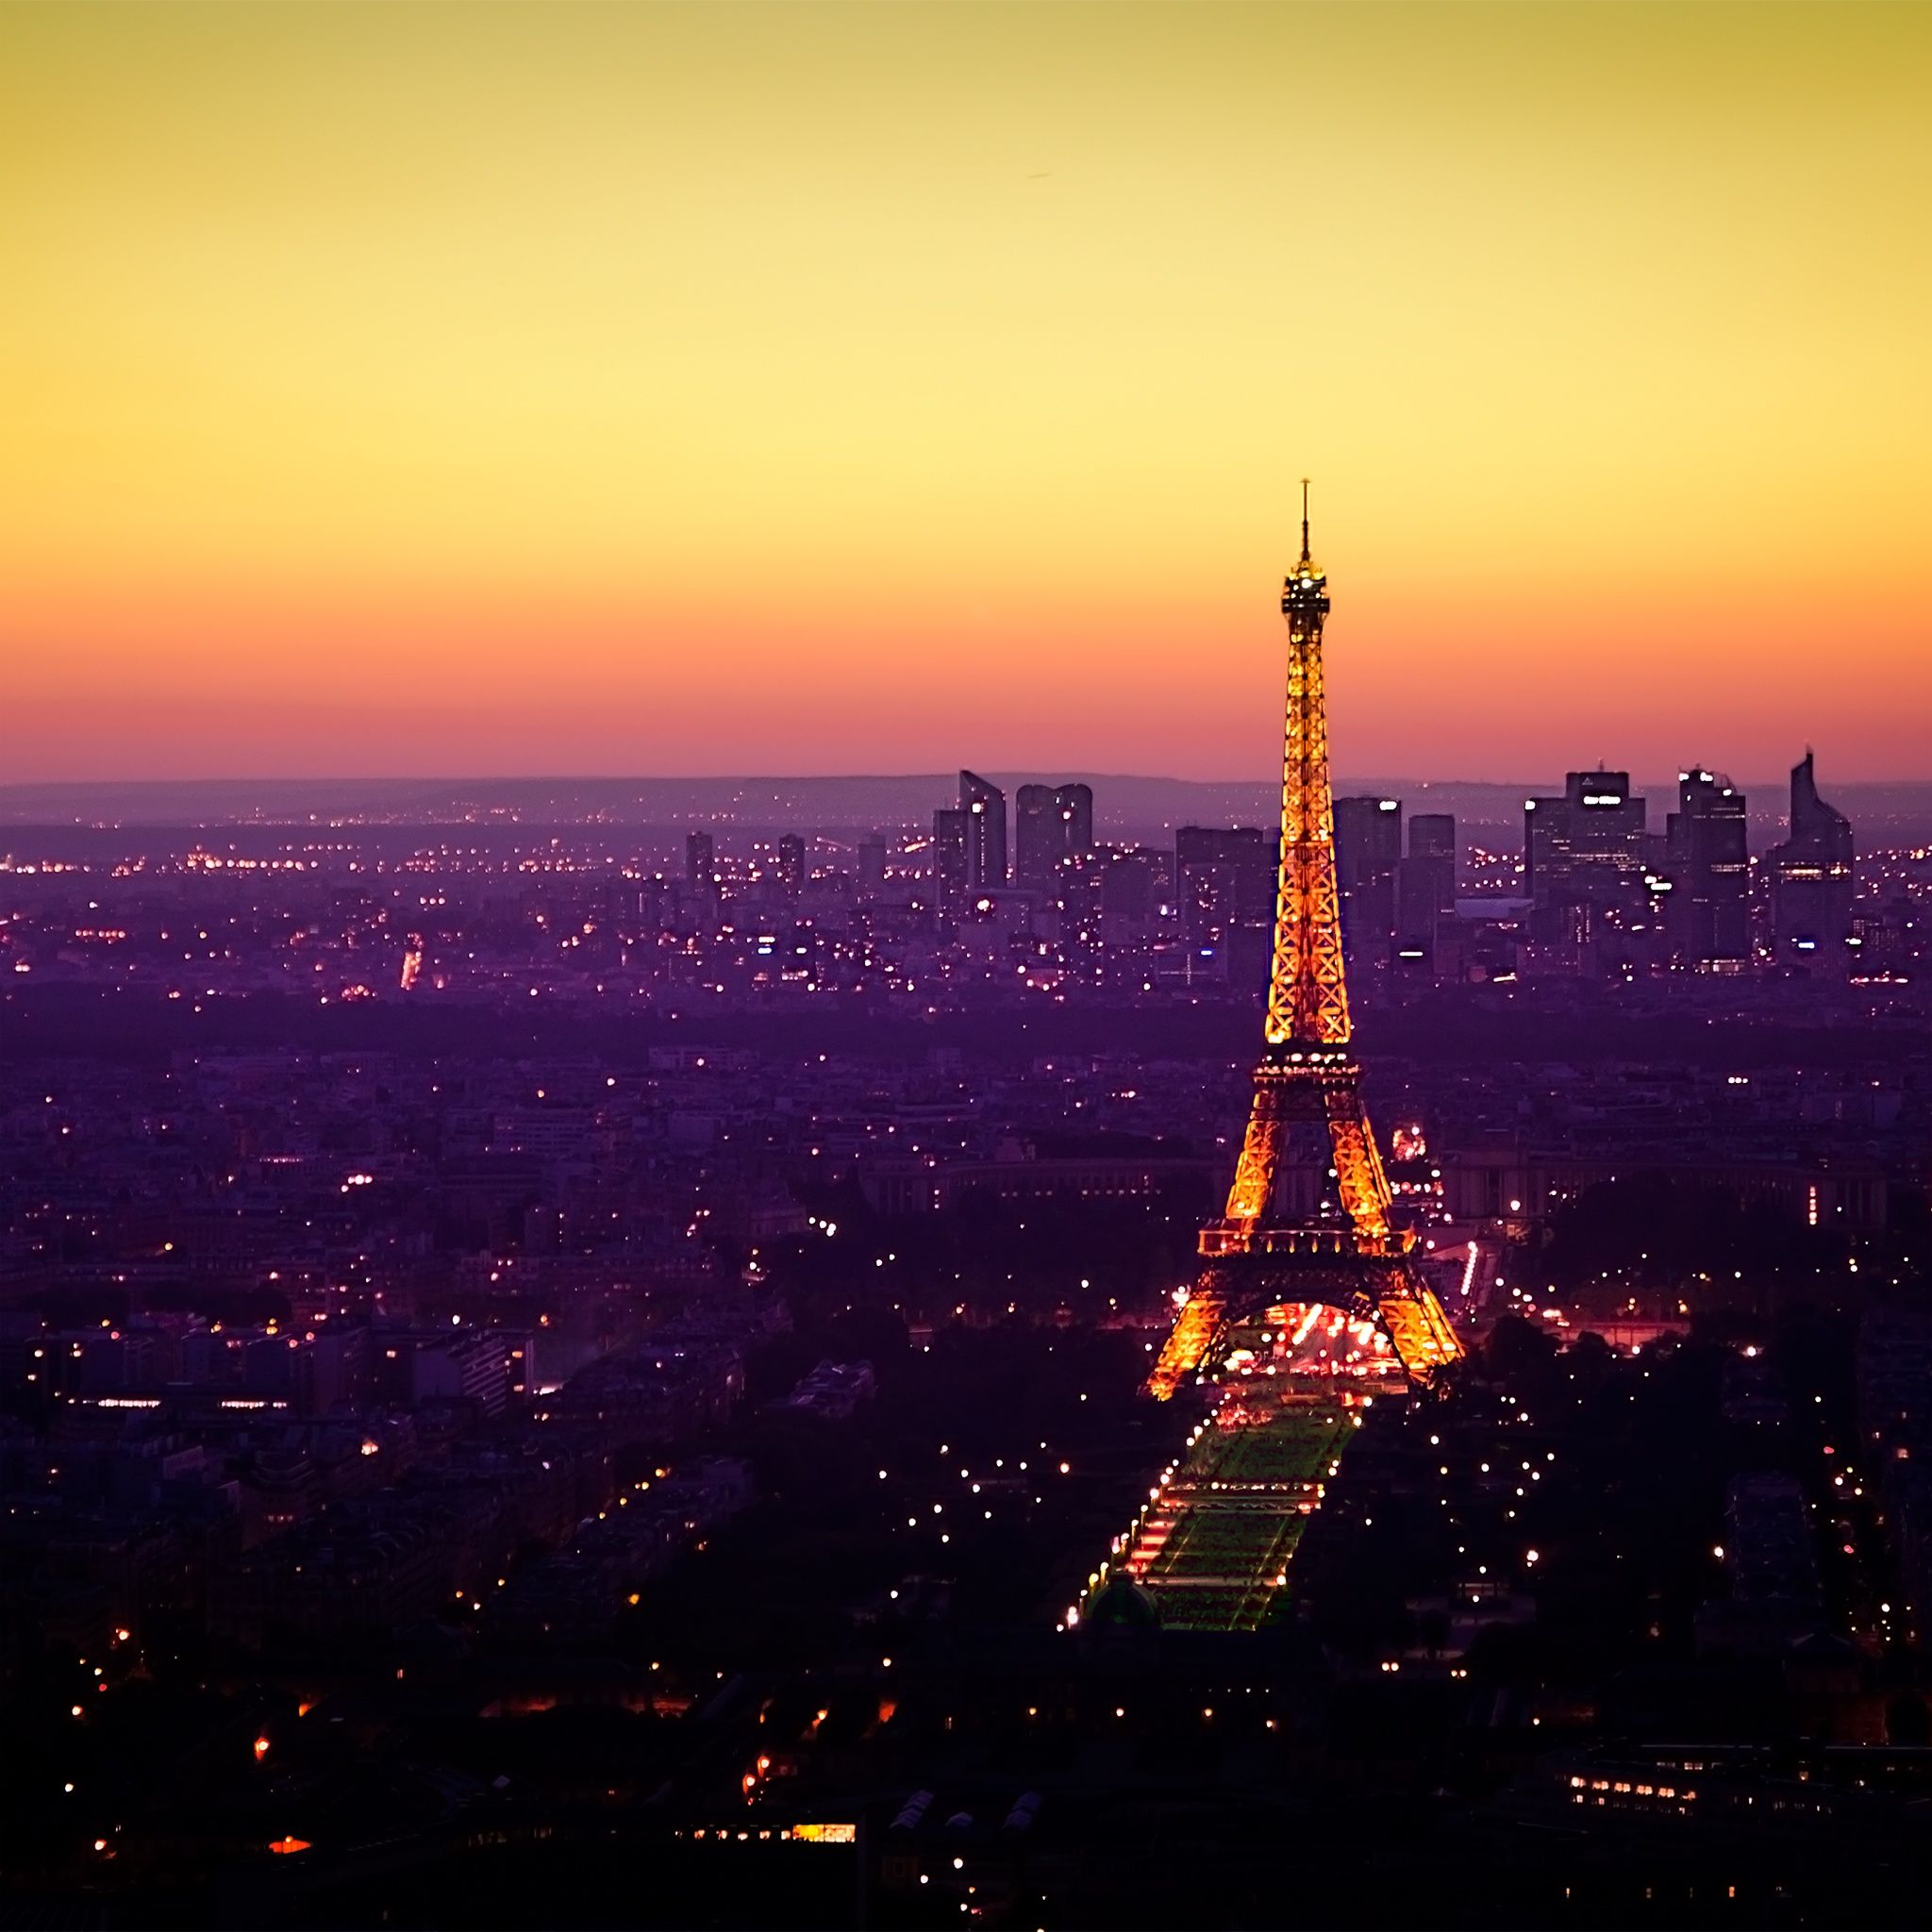 Paris Sunset Eiffel Tower IPad Wallpaper HD #iPad